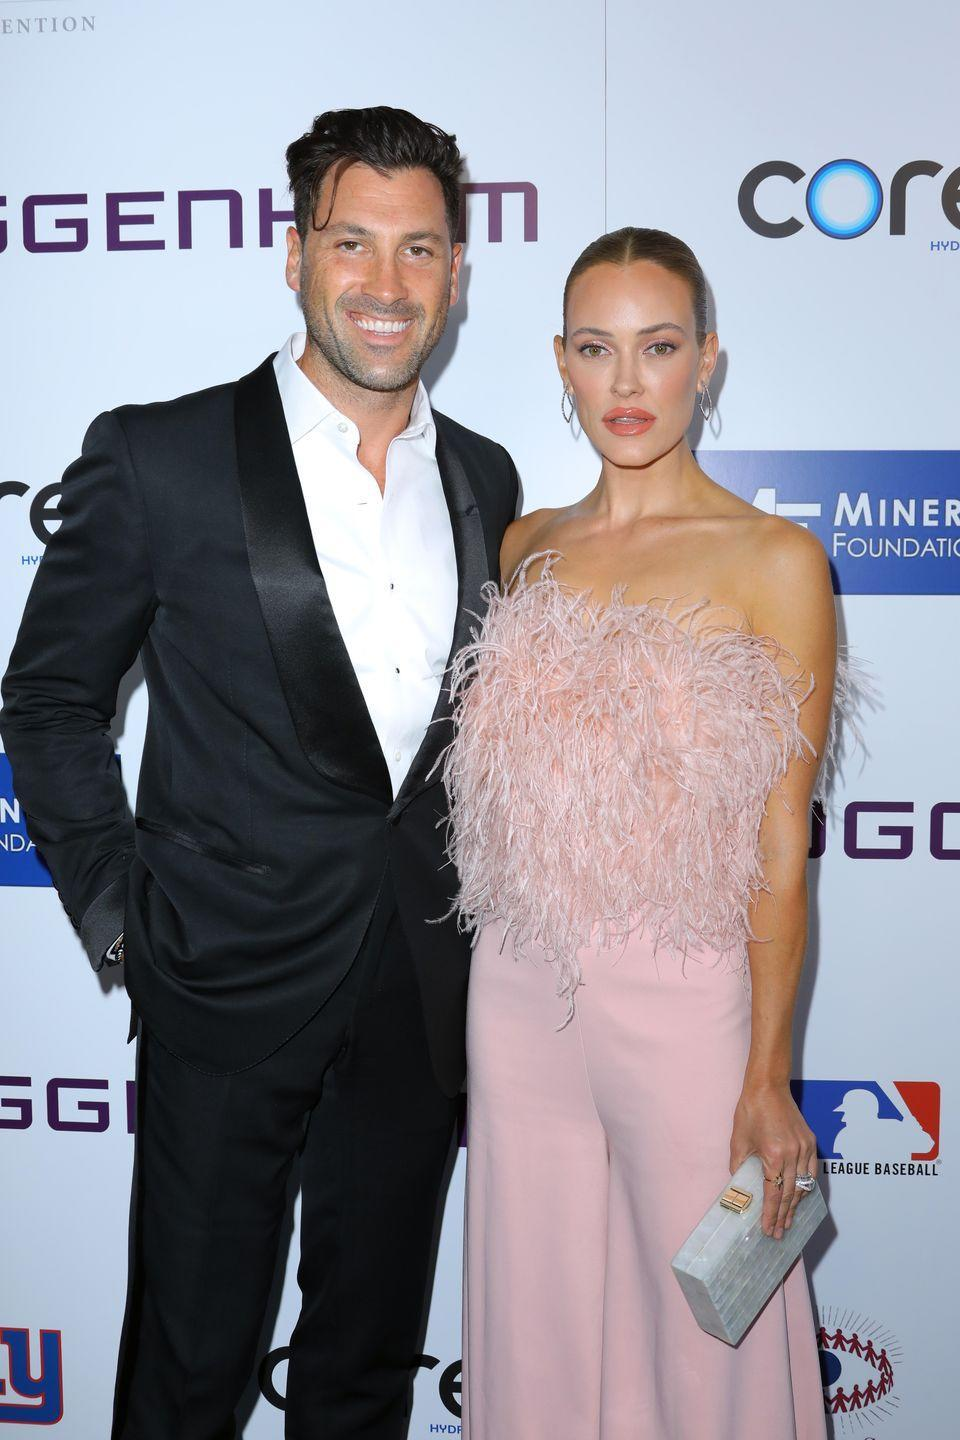 <p>Both <em>DWTS </em>pros have had their fair share of showmances. But in the end, Peta Murgatroyd and Maksim Chmerkovskiy (not to be confused with his brother, Val, who's also married to a <em>DWTS</em> pro) were the relationship that lasted. The couple welcomed their son, Shai, in 2017 and got married six months later. </p>